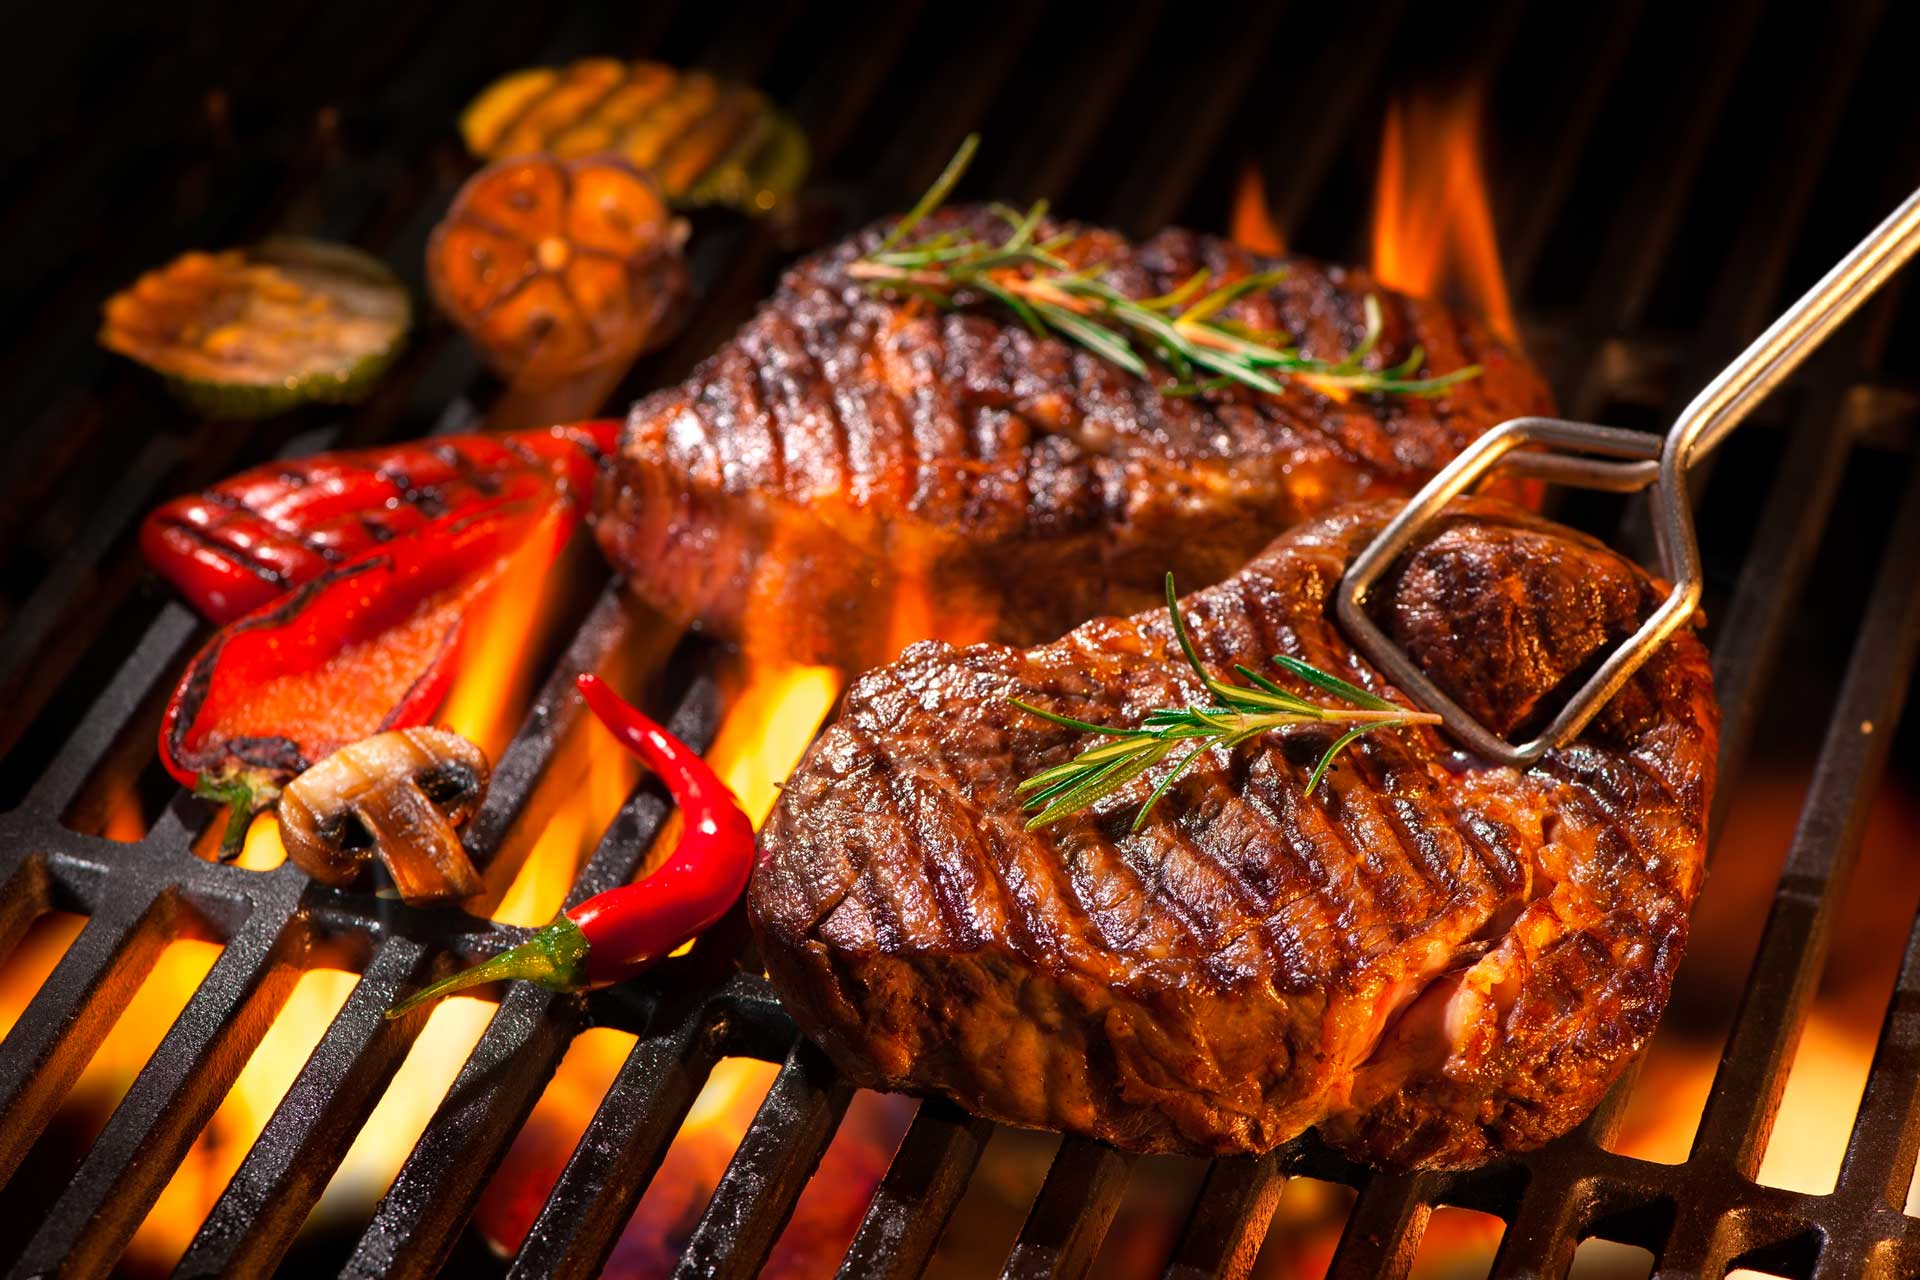 Summer cookout sizzle